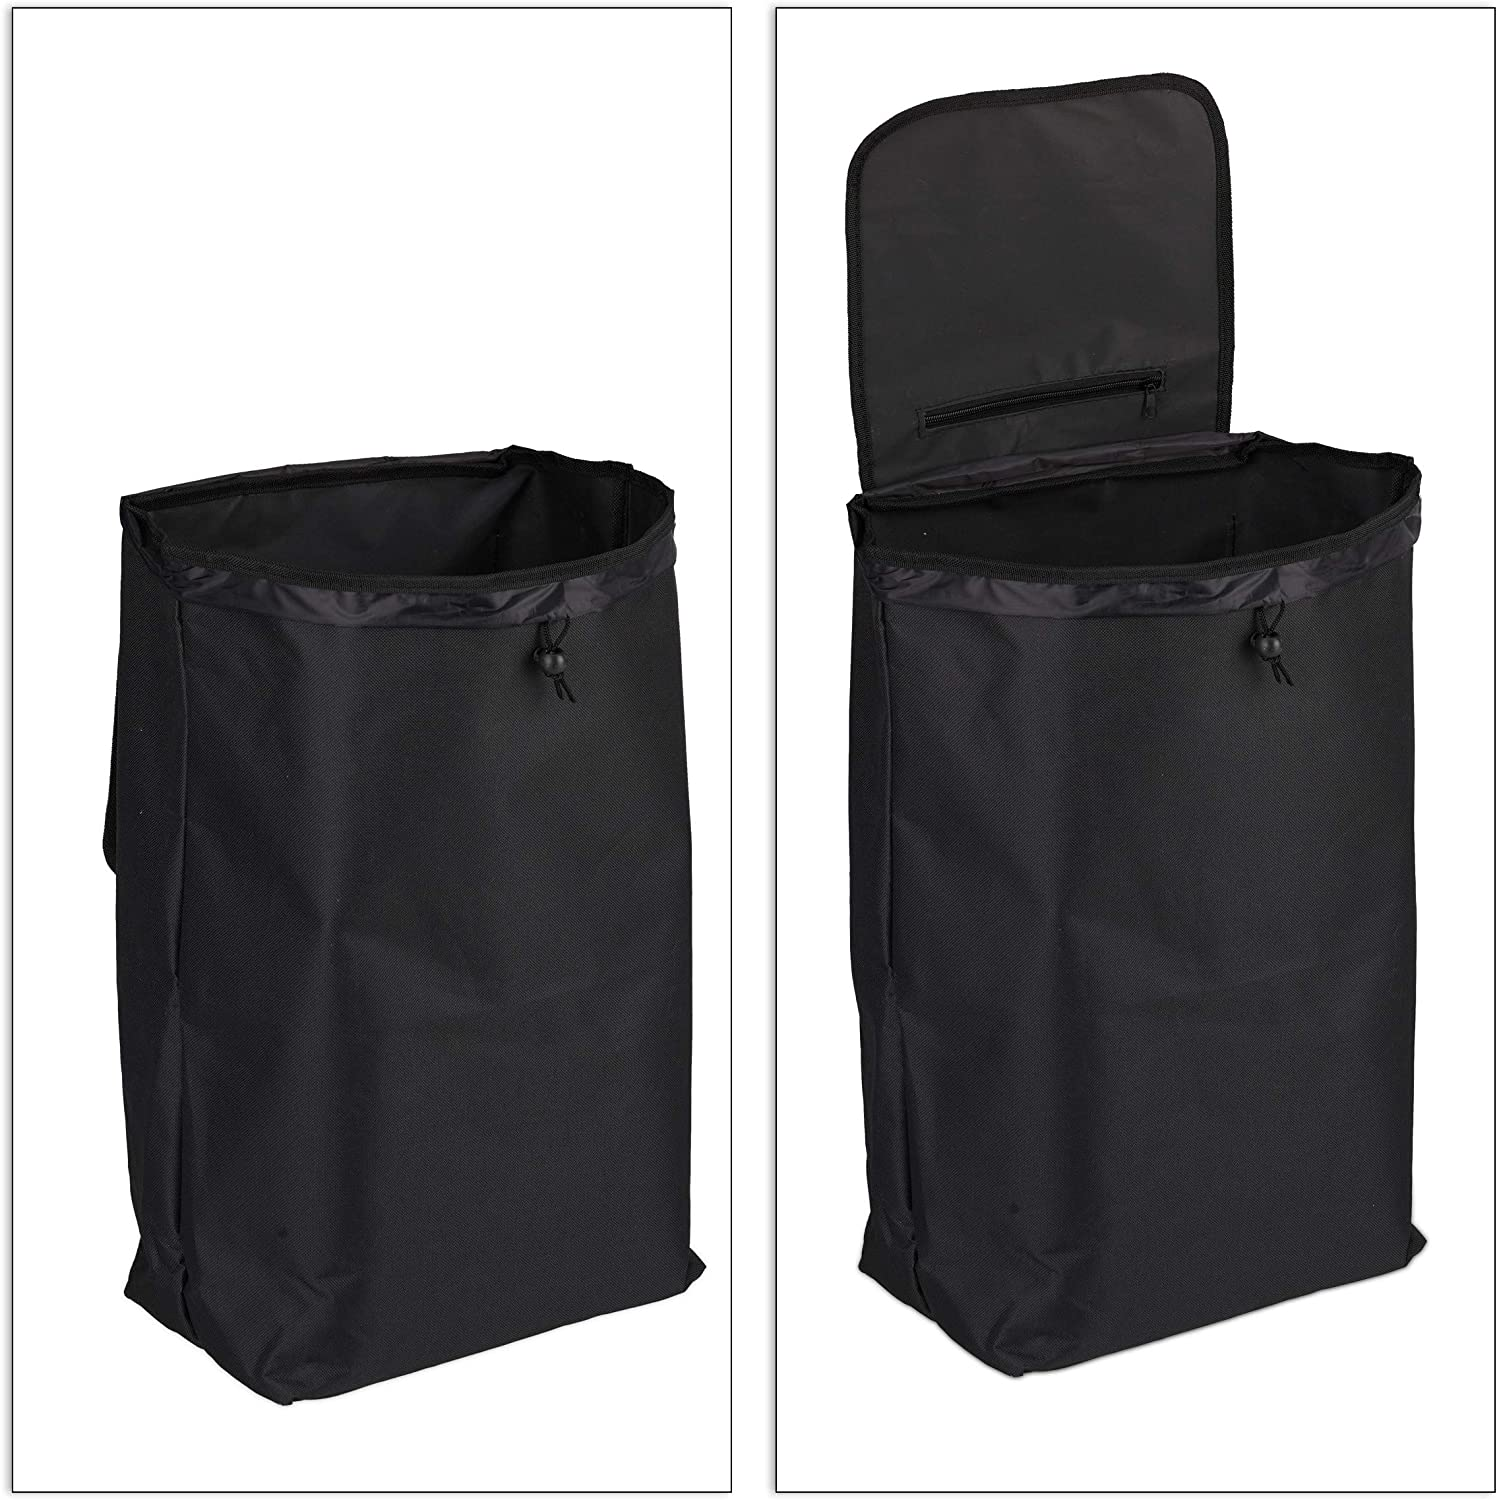 10 kg Capacity 91 x 40 x 30 cm Relaxdays Shopping Trolley 25 L Grocery Tote with Casters Black Pack of 1 Folding